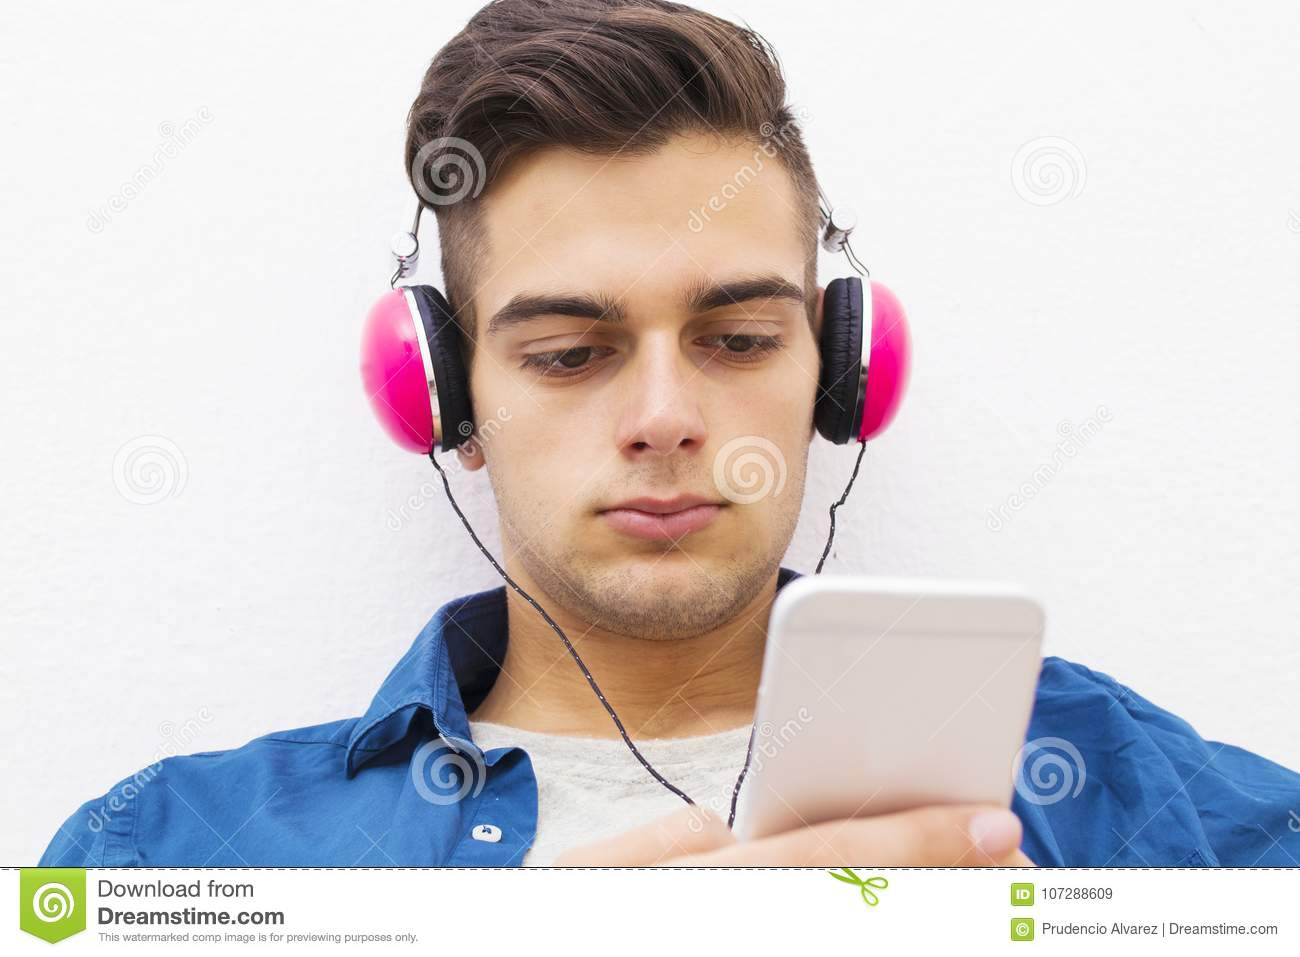 Serious teen boy with headphones and mobile phone